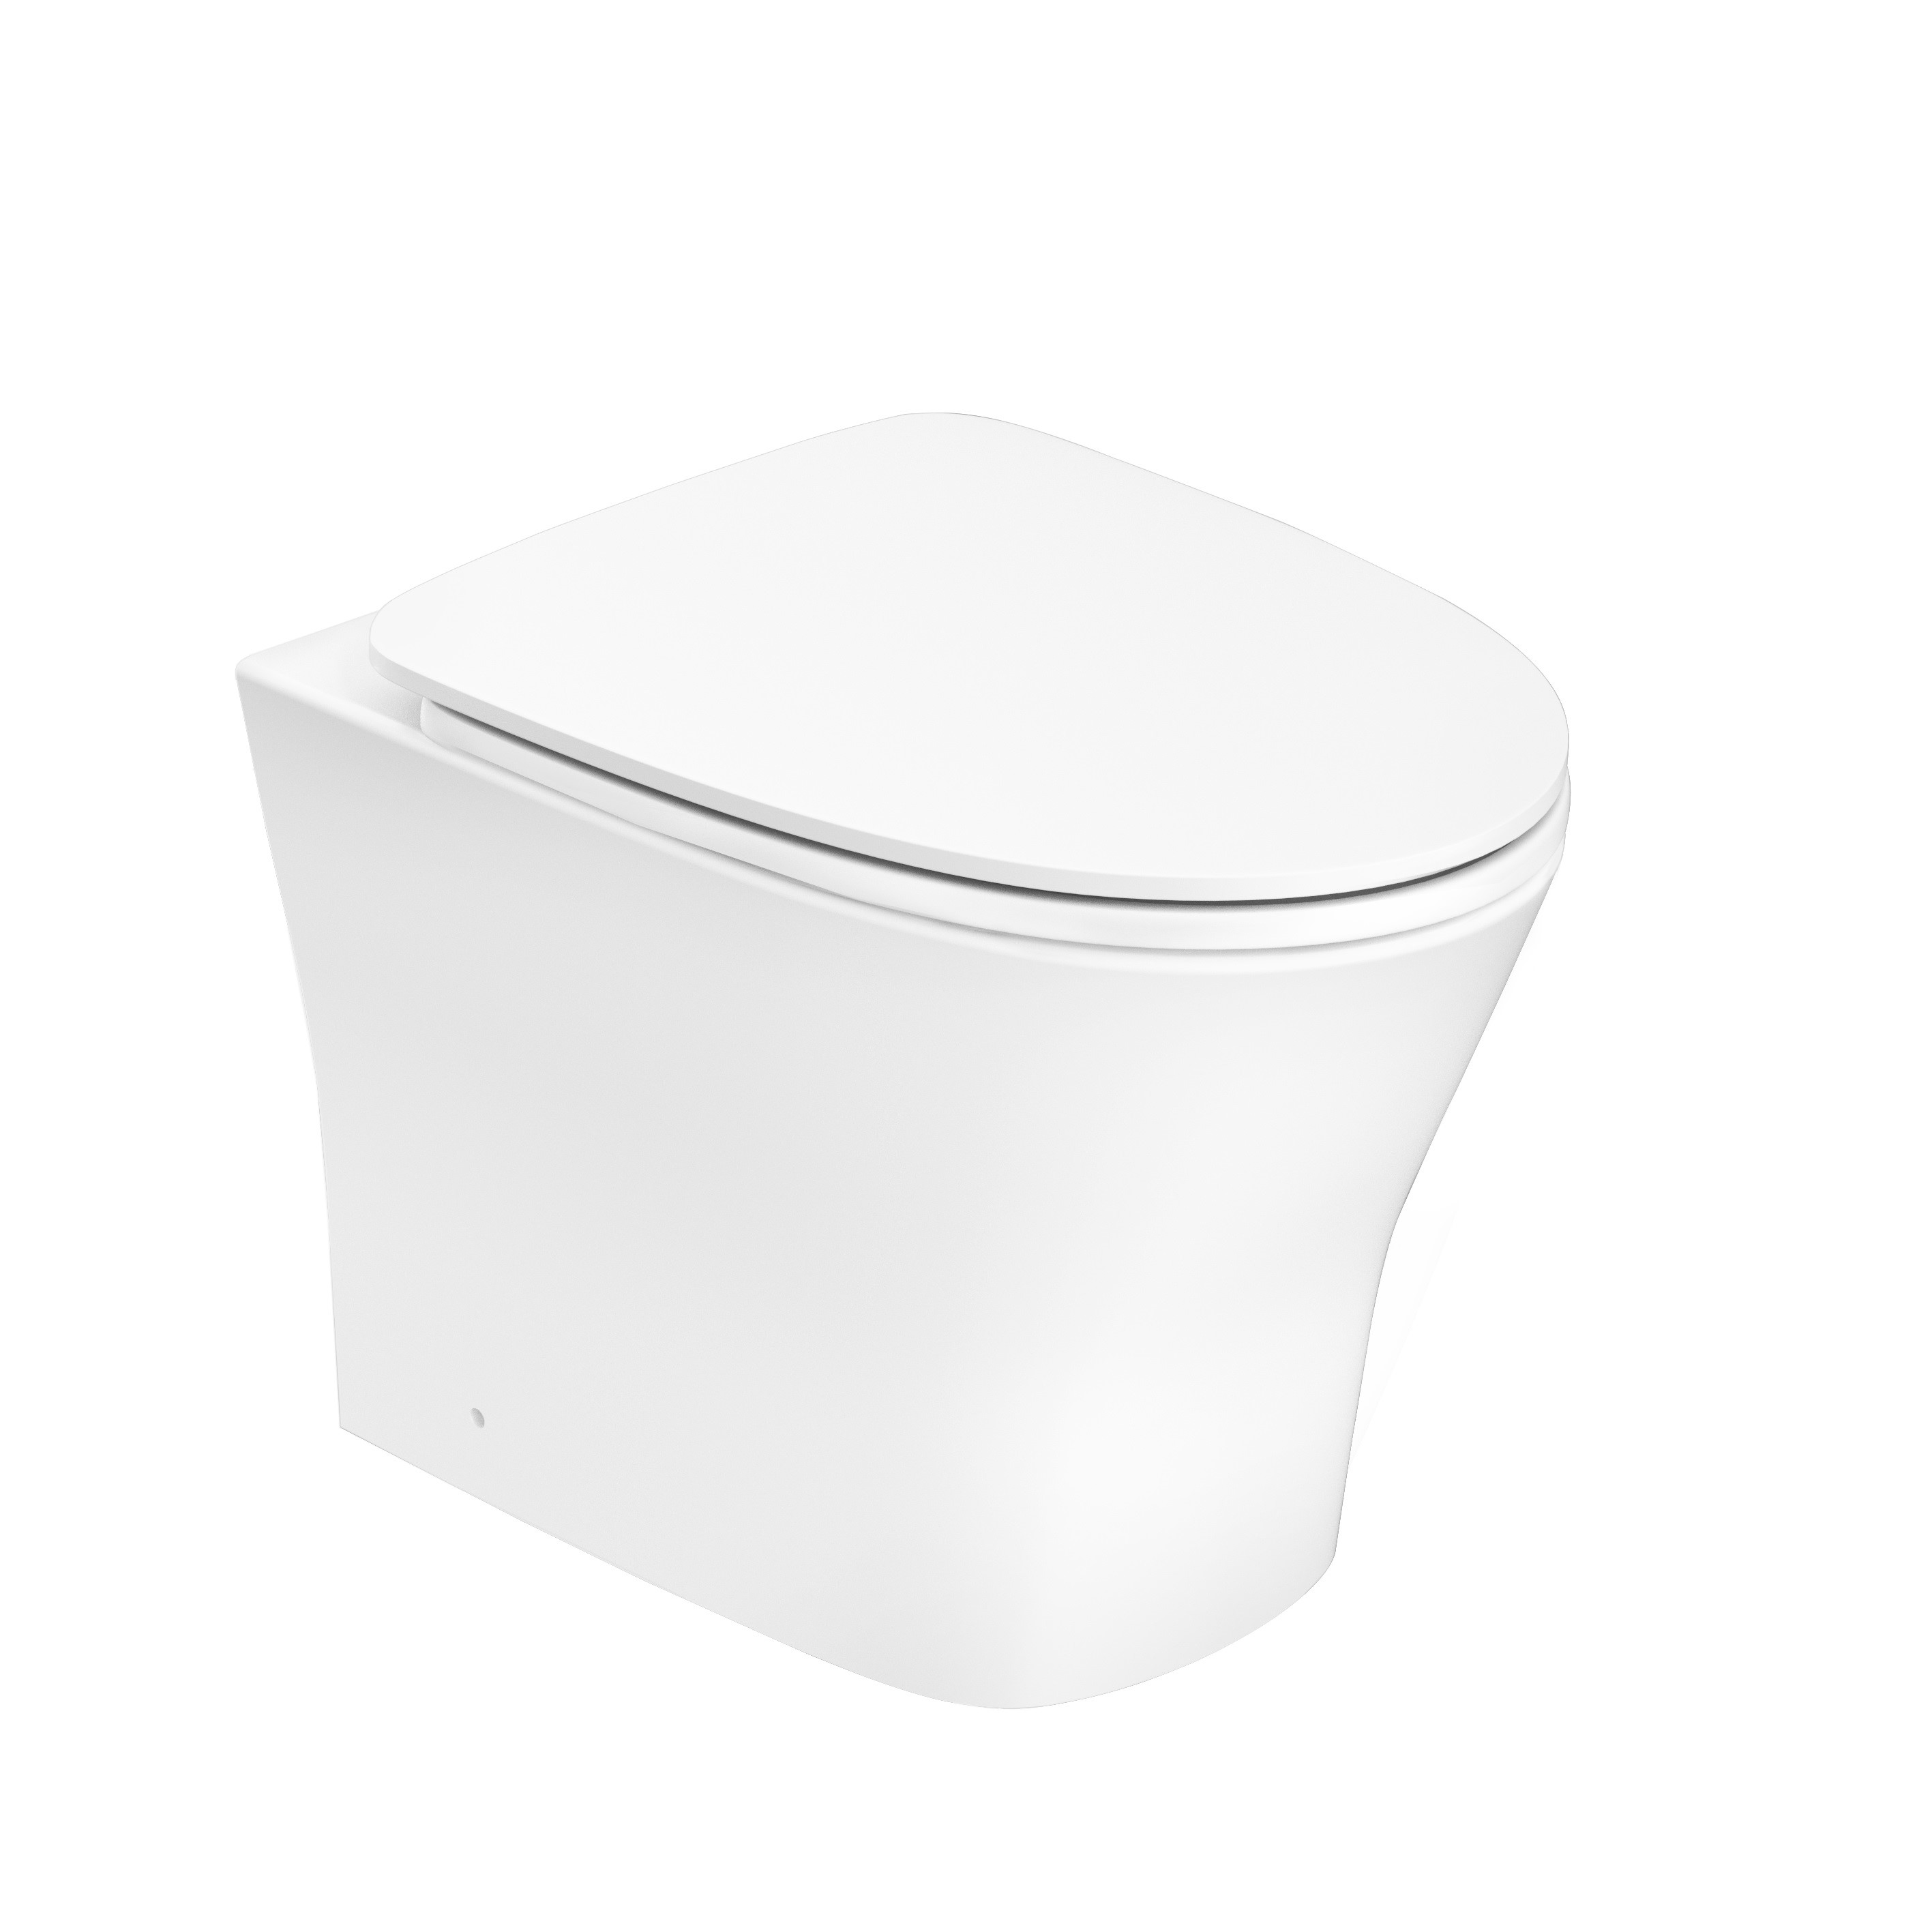 Signature BTW VO Toilet with Concealed Tank 3/4.5L